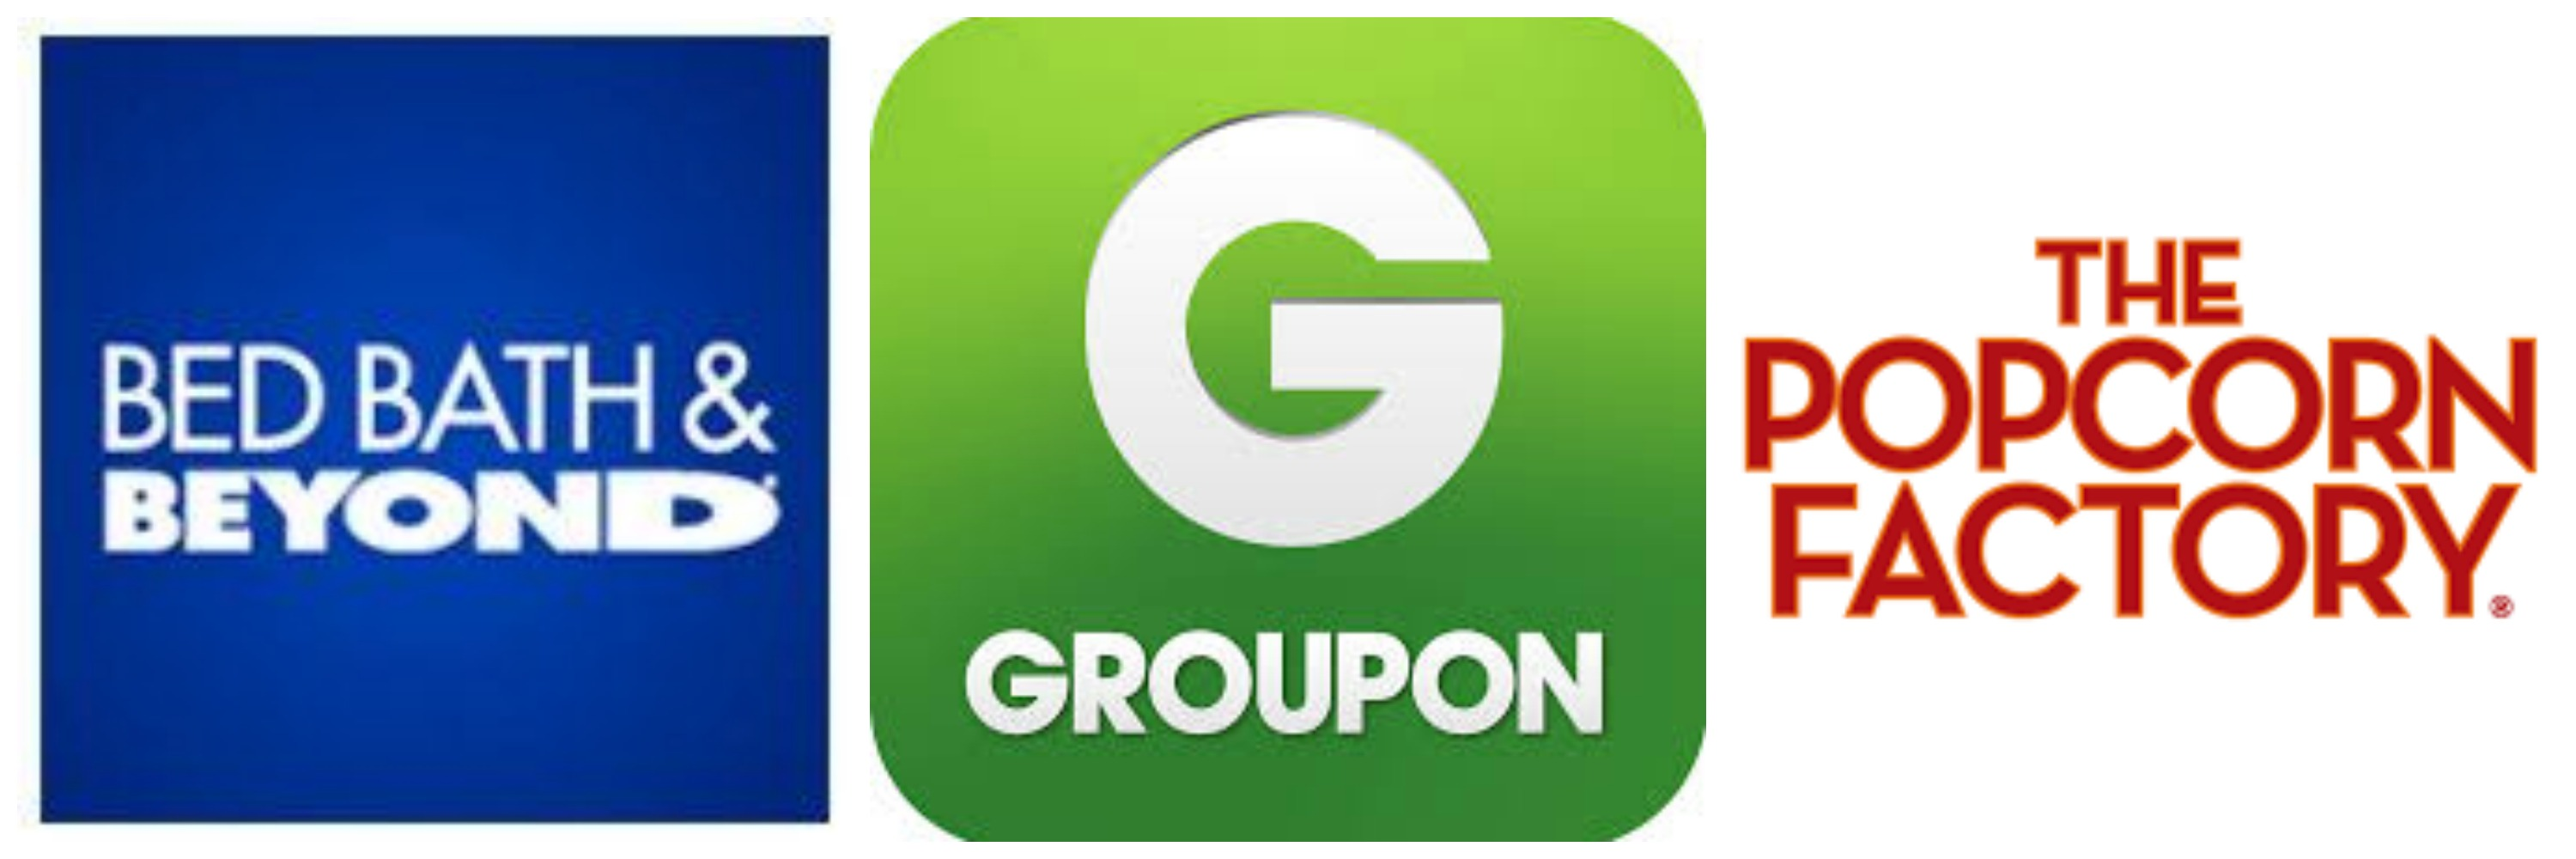 Save Money with Groupon Coupons LeMoine Family Kitchen